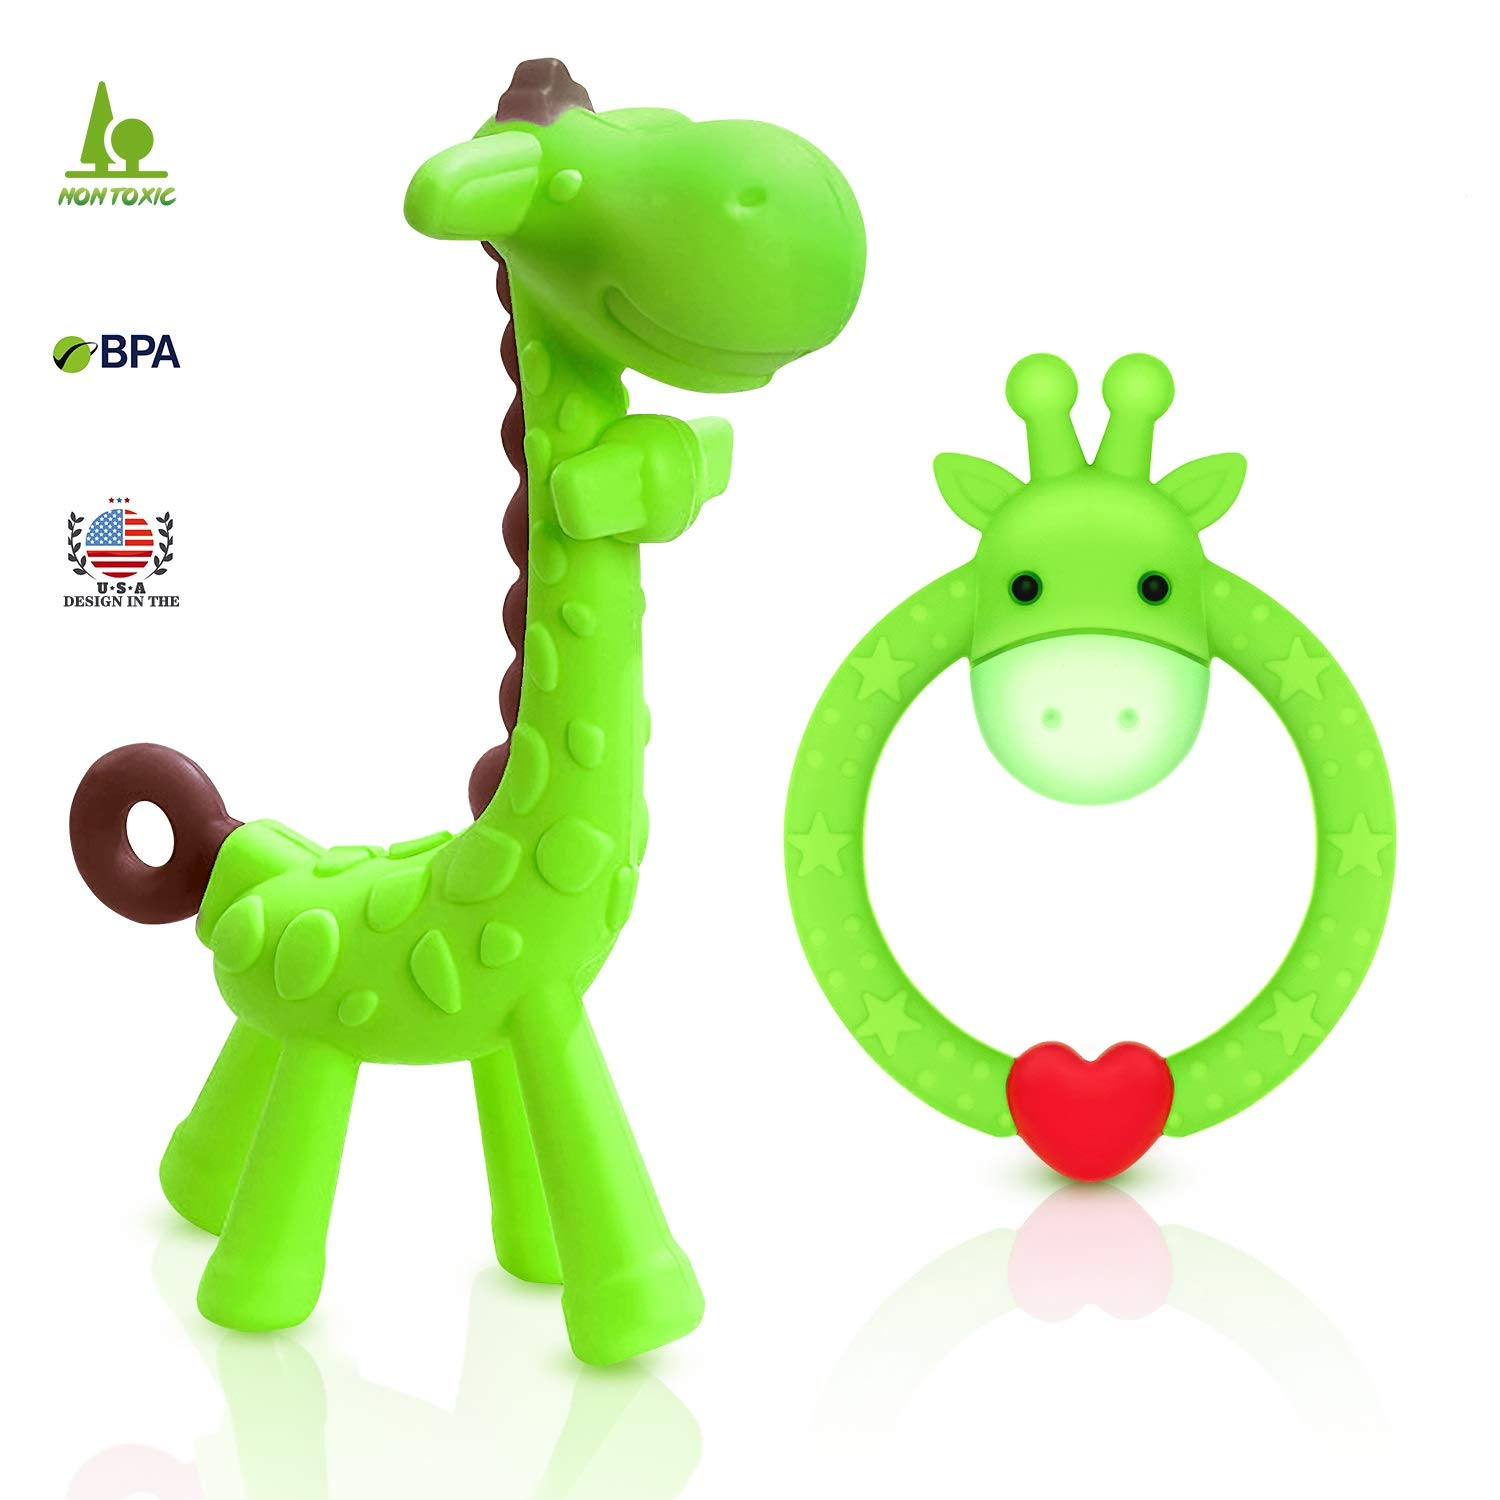 SHARE&CARE BPA Free 2 Silicone Giraffe Baby Teether Toy with Storage Case, for 3 Months Above Infant Sore Gums Pain Relief, Set of 2 Different Teething Toys (Green)